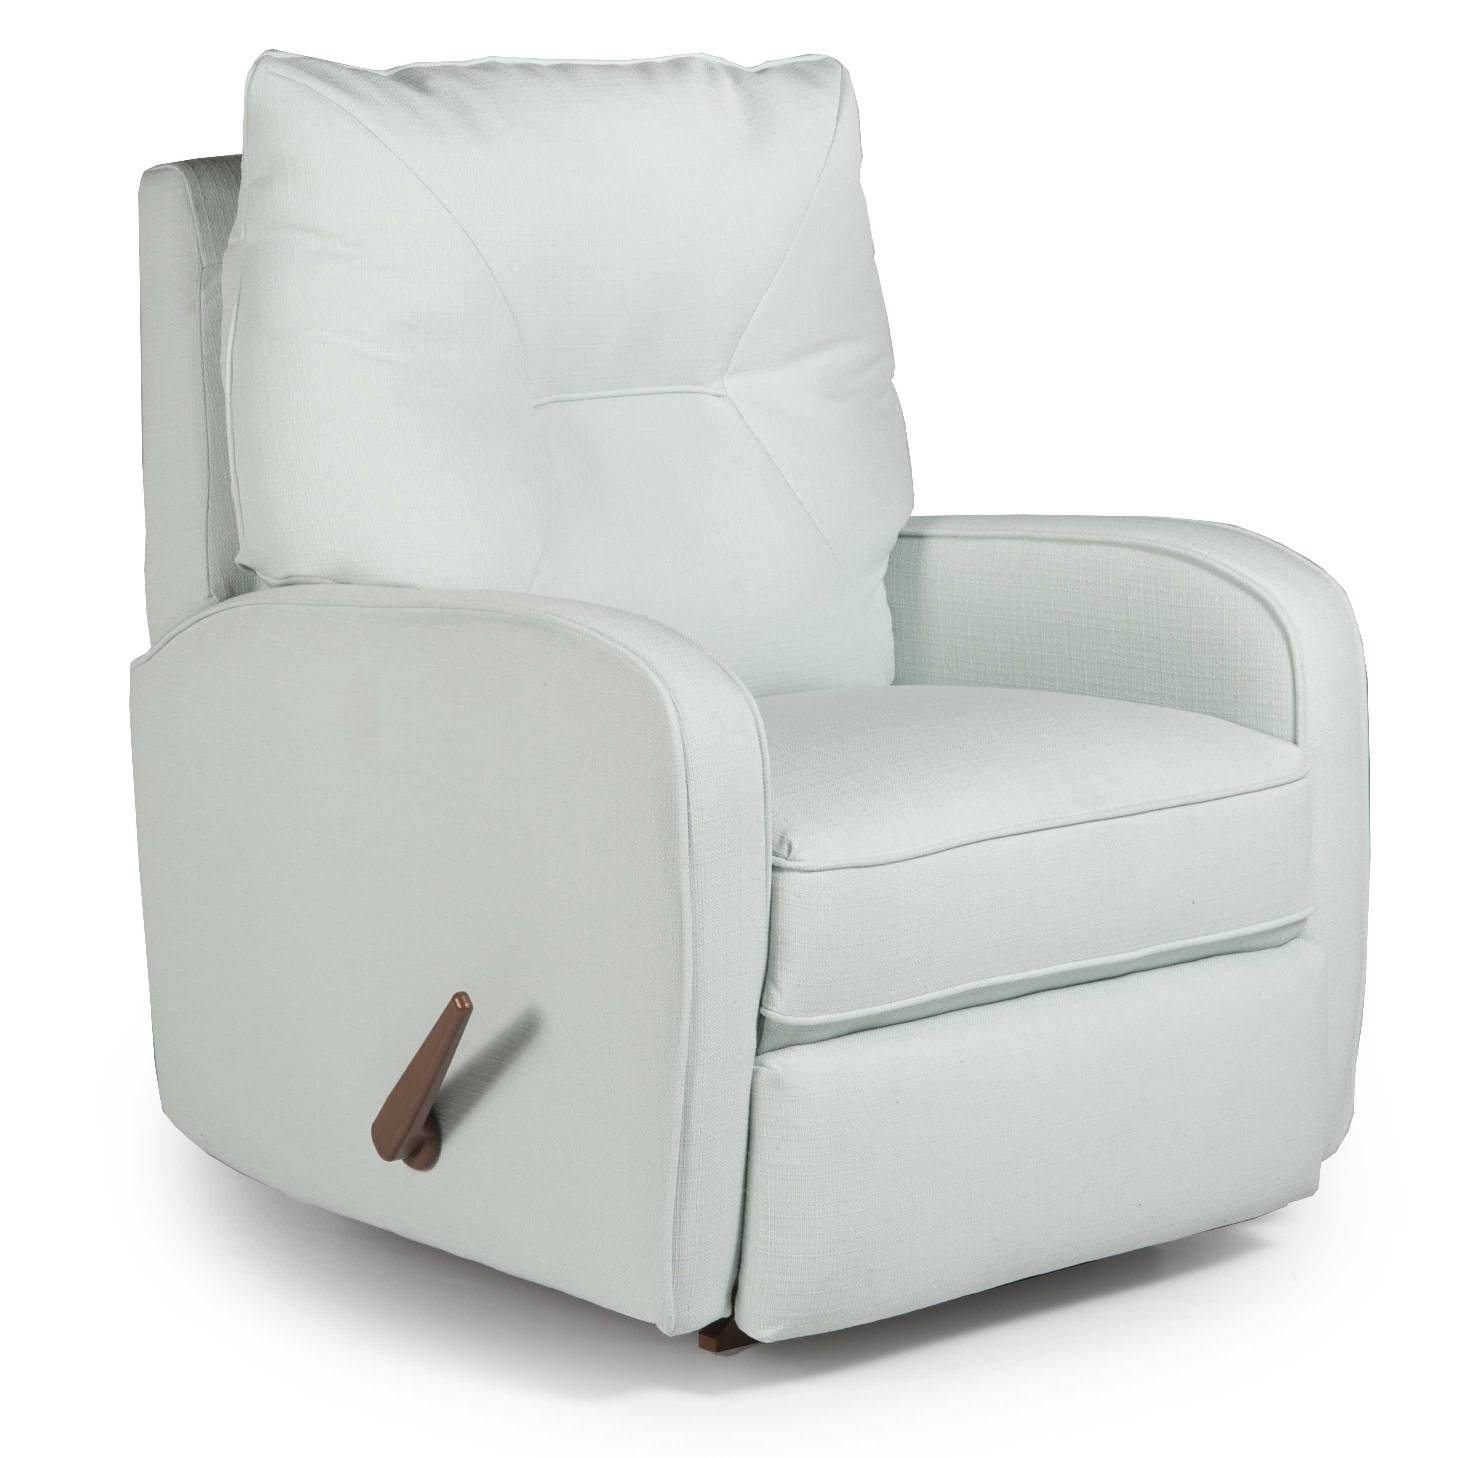 height furnishings petite home item trim best products swivel width f petiteswivel threshold glider recliner recliners